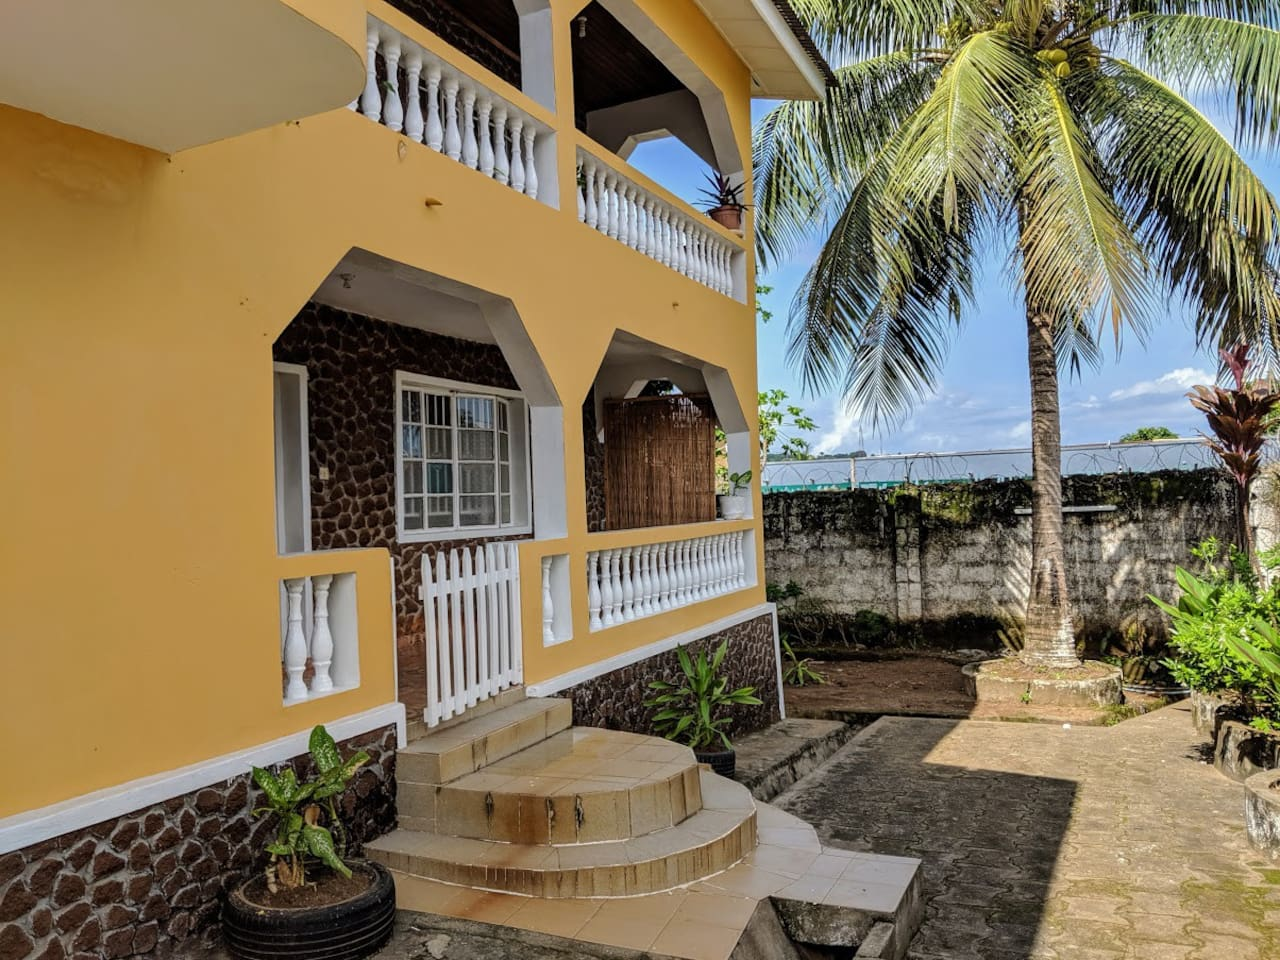 Our home is located in quiet area in central west Freetown where most restaurants, bars, and NGOs are located. We are also just 5-10 min away from the beach :)